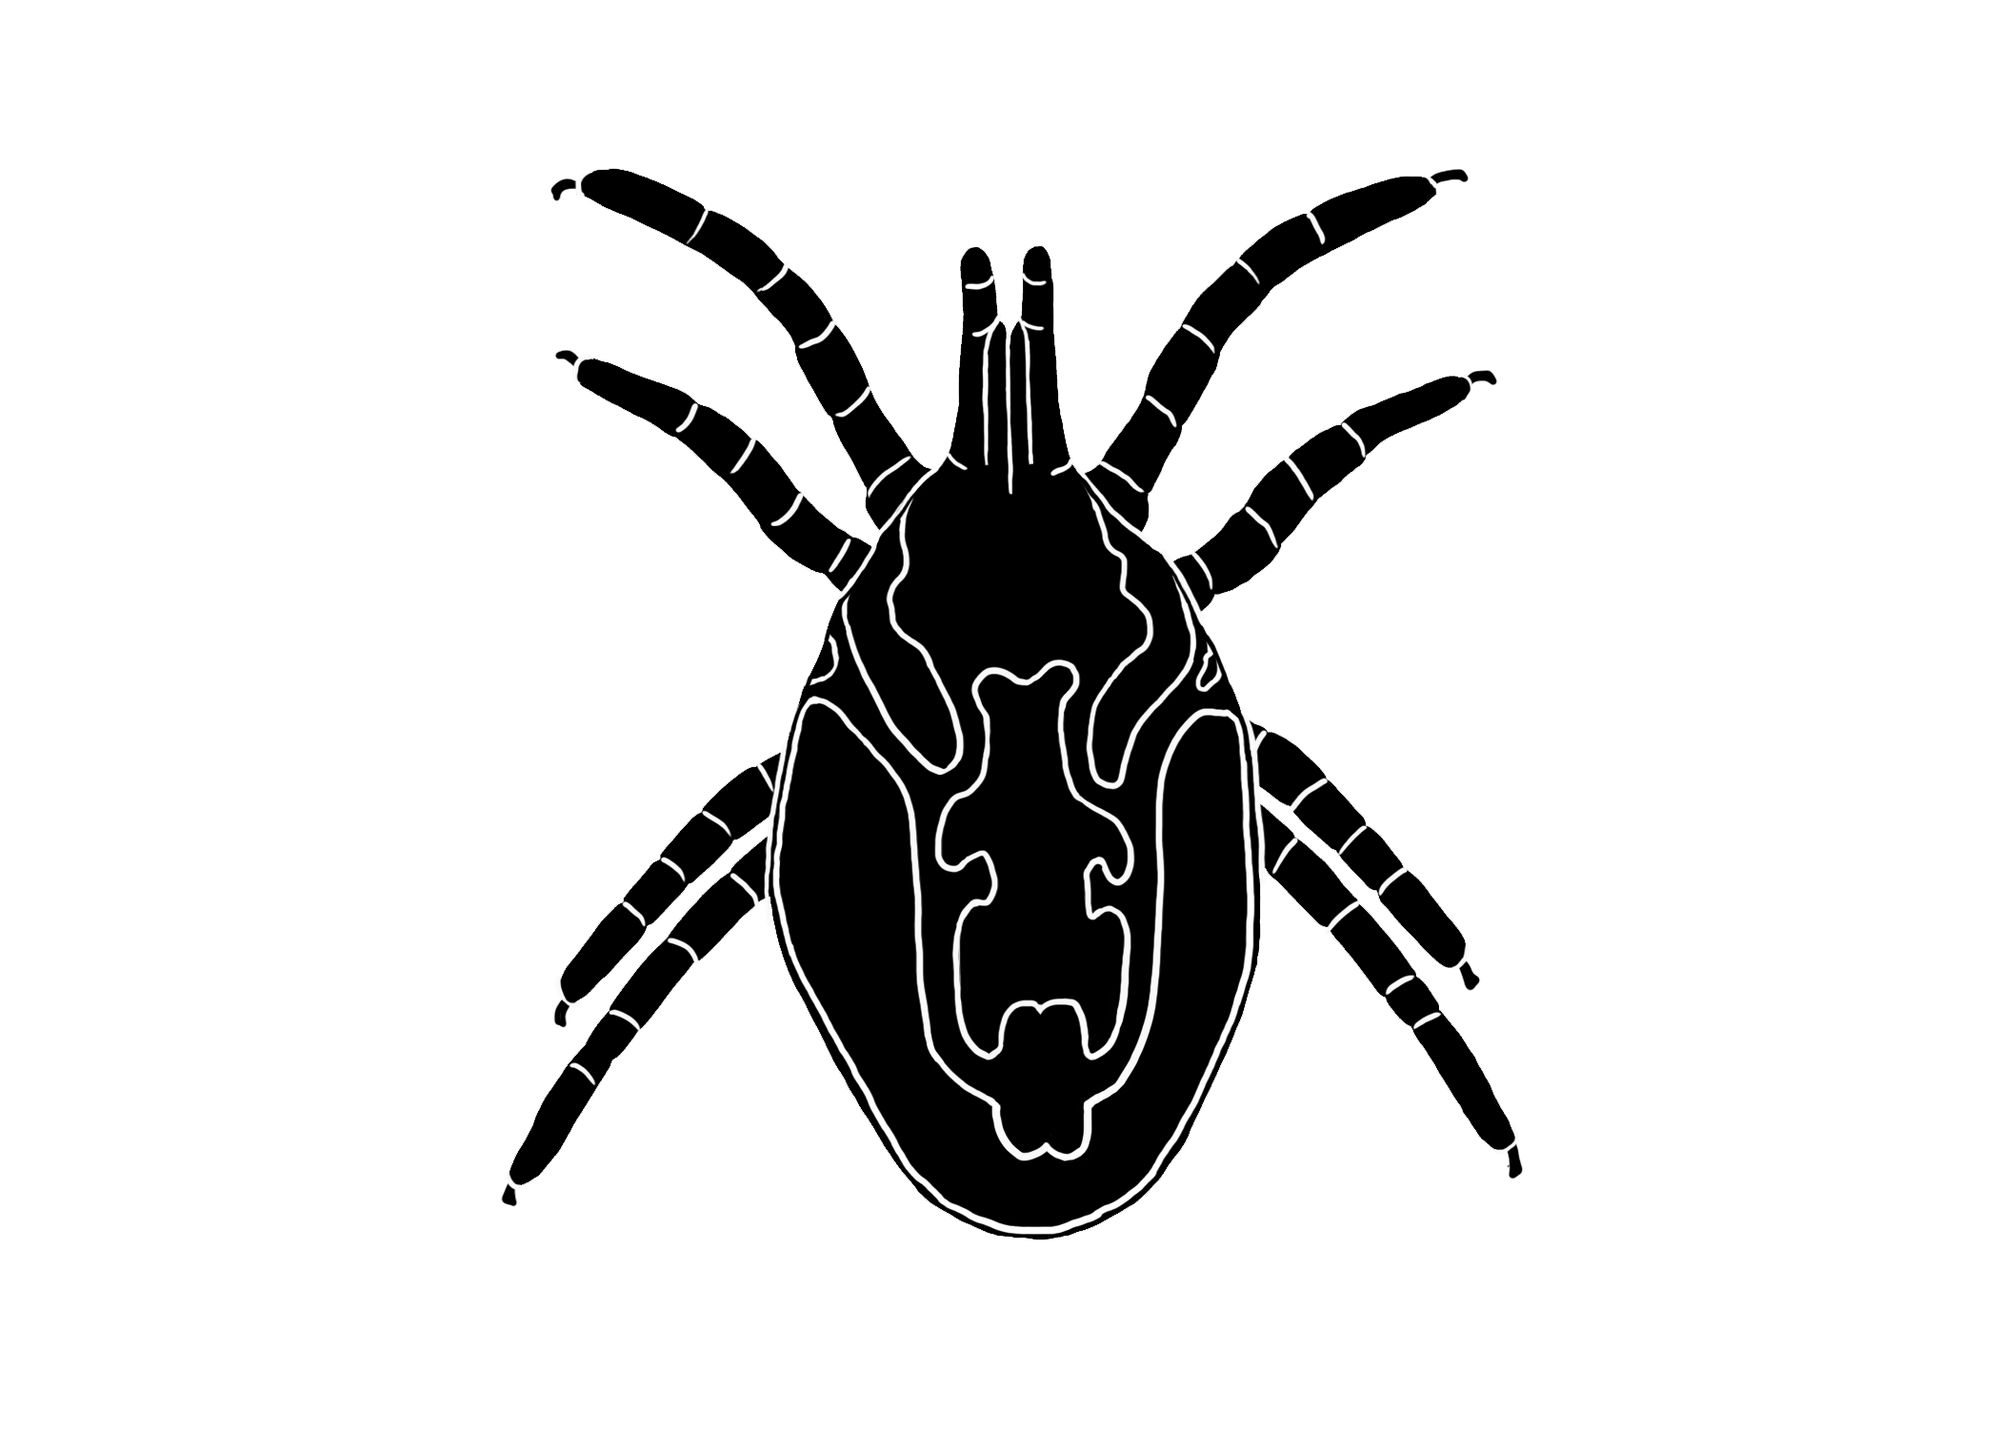 Top-down view of a rat mite outline, colored in completely black, with a few white lines showing what the squiggly digestive tract looks like inside the mite. The mite has 8 legs - two pairs are on the front end of its body and two pairs are on the back end.